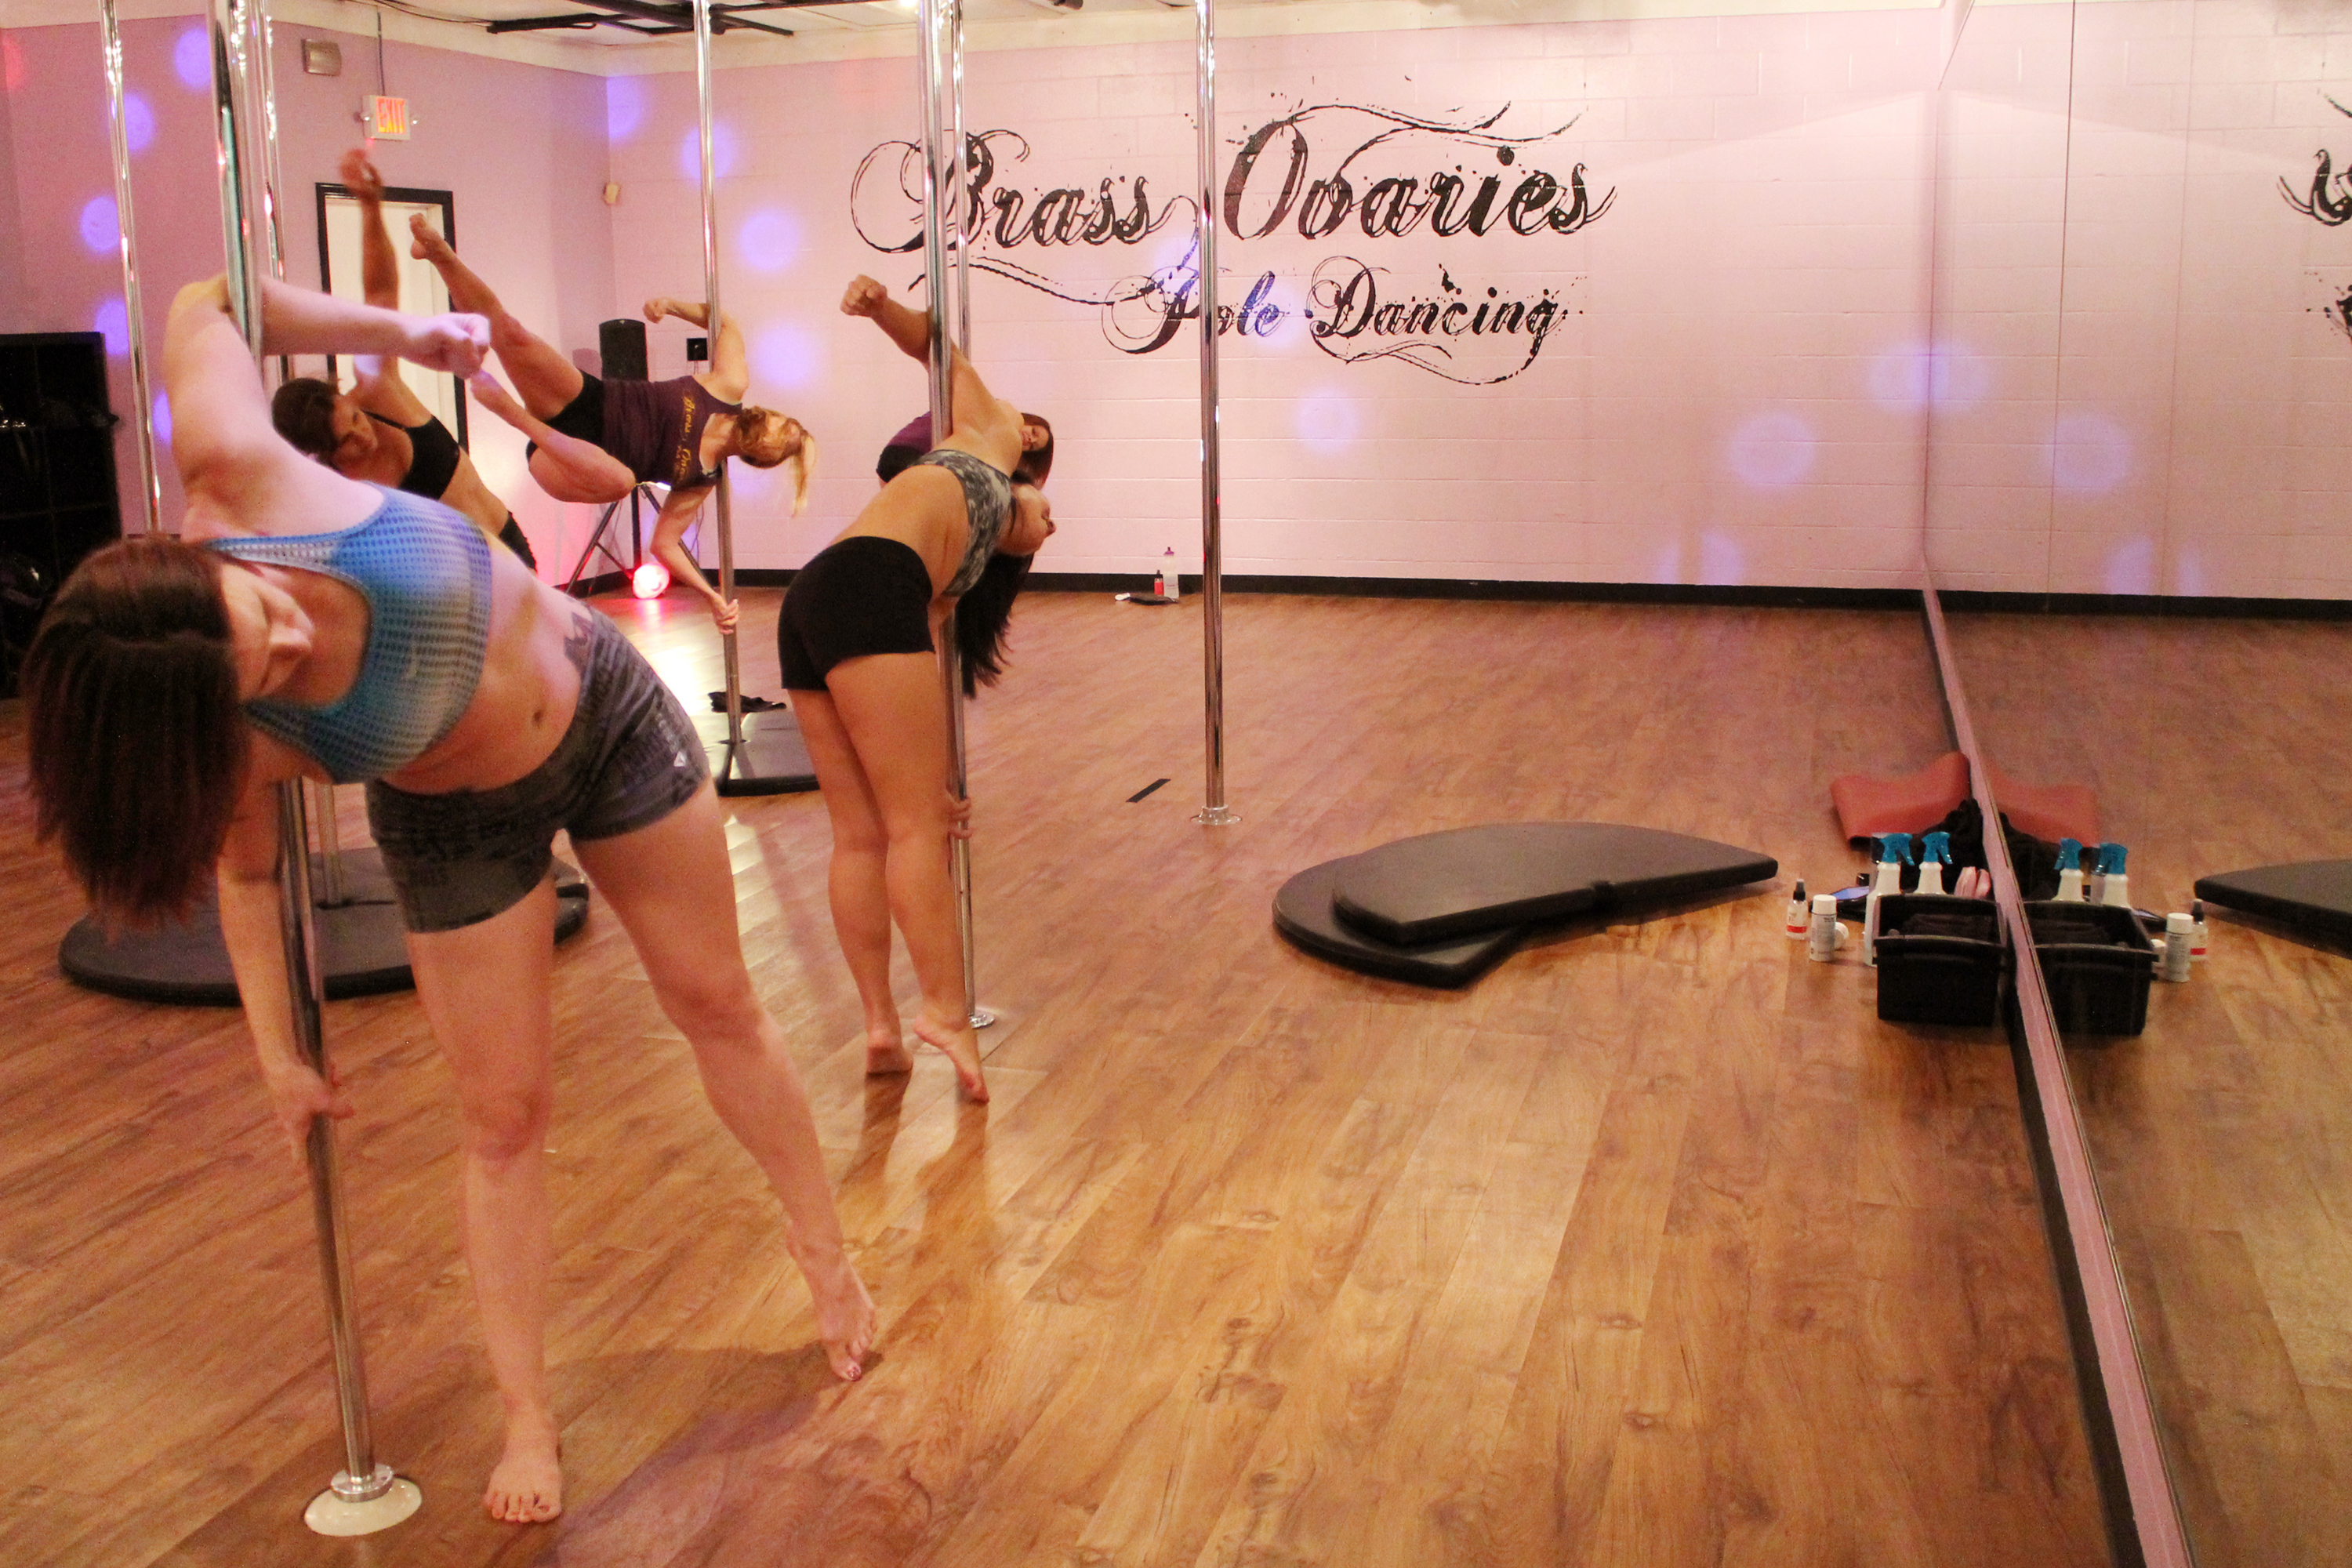 Brass Ovaries Has Two Pole Dancing Studios Where Instructors Teach Daily Classes In The Main